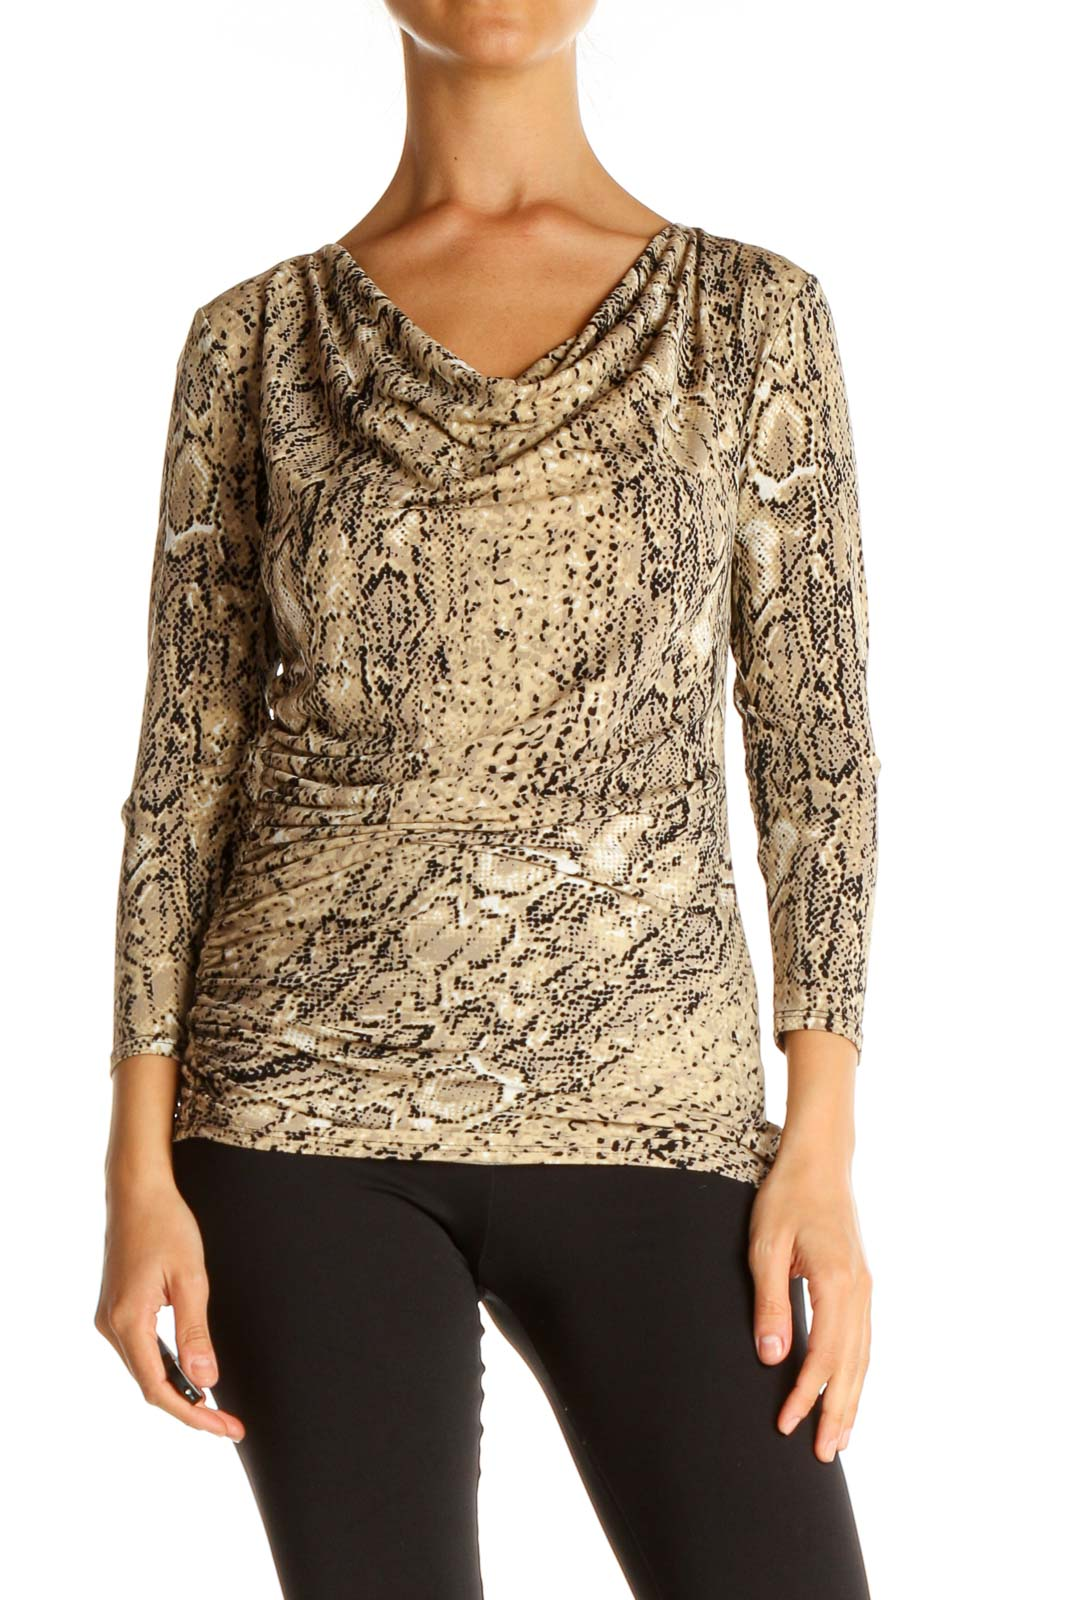 Beige Animal Print Chic Blouse Front